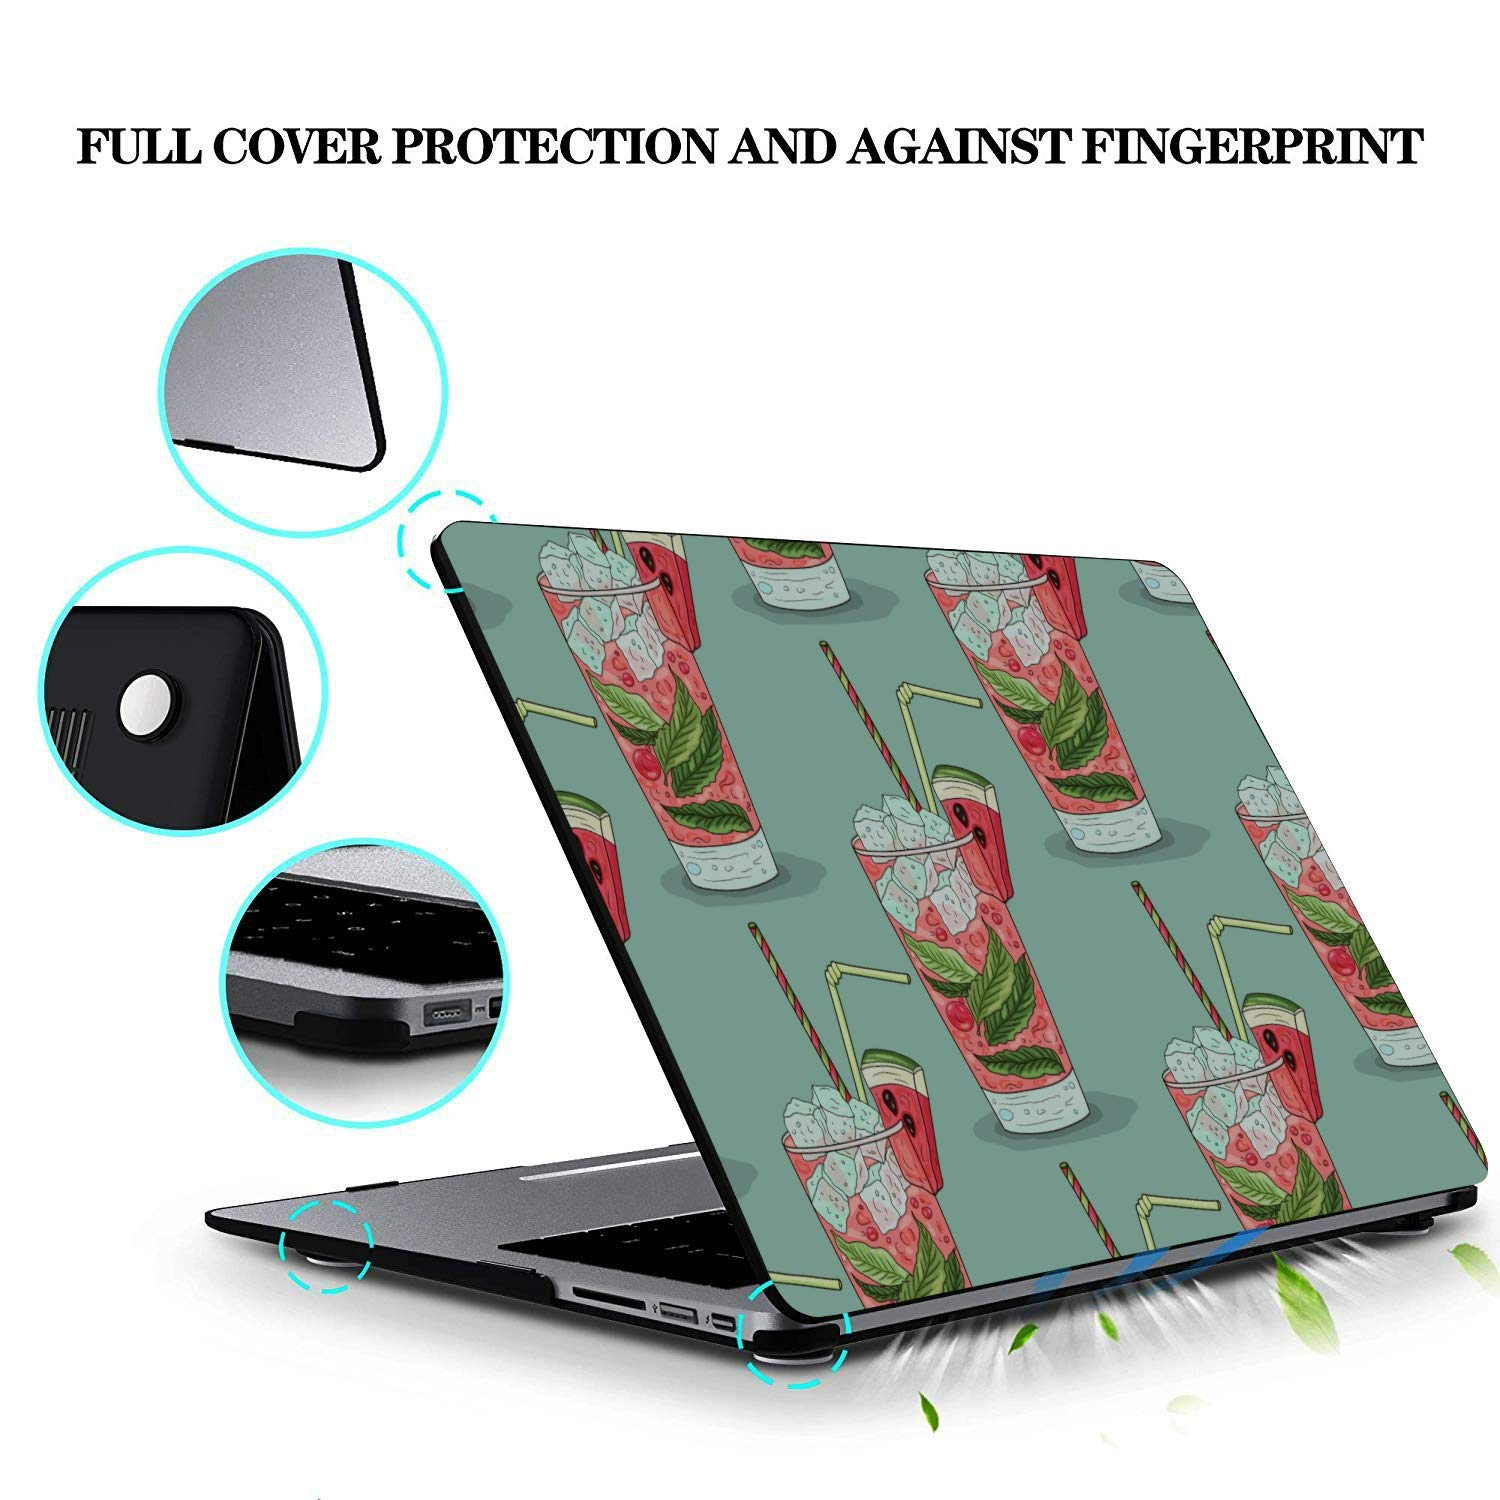 MacBook 2018 Case Summer Sweet Cool Watermelon Juice Plastic Hard Shell Compatible Mac Air 11 Pro 13 15 MacBook Pro Cover Protection for MacBook 2016-2019 Version